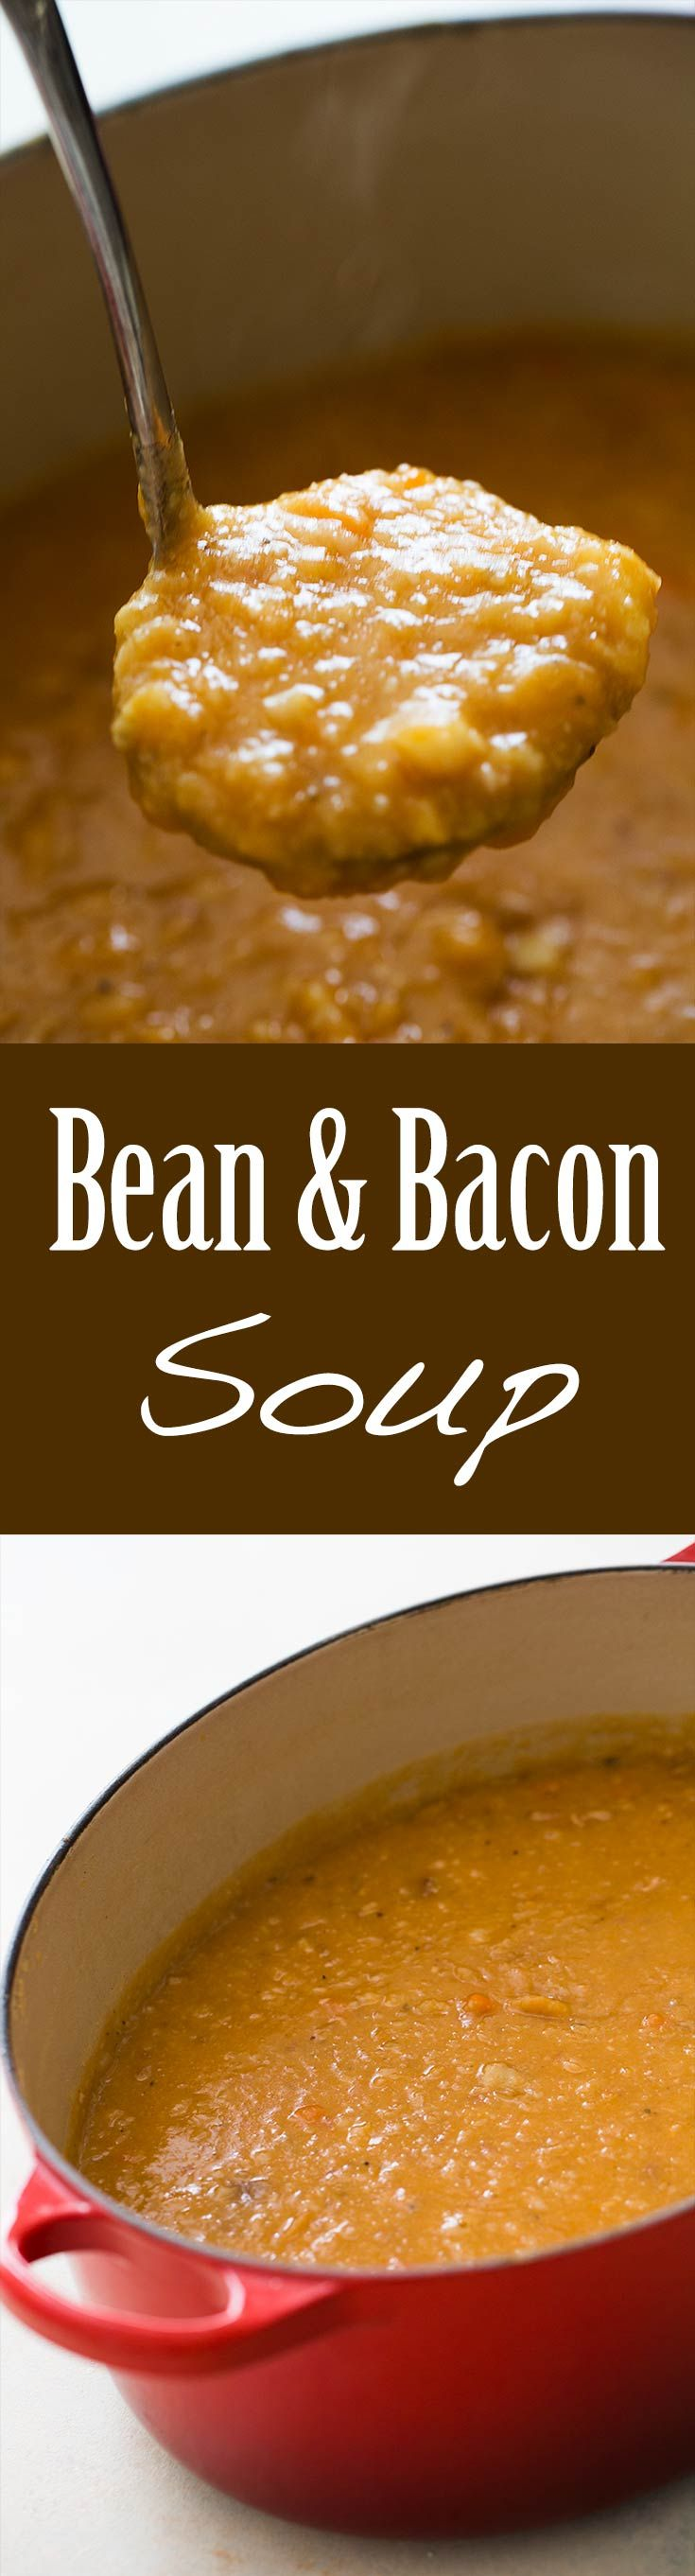 Is there anything better than bean and bacon soup? Best comfort soup ever! Bean and bacon soup with